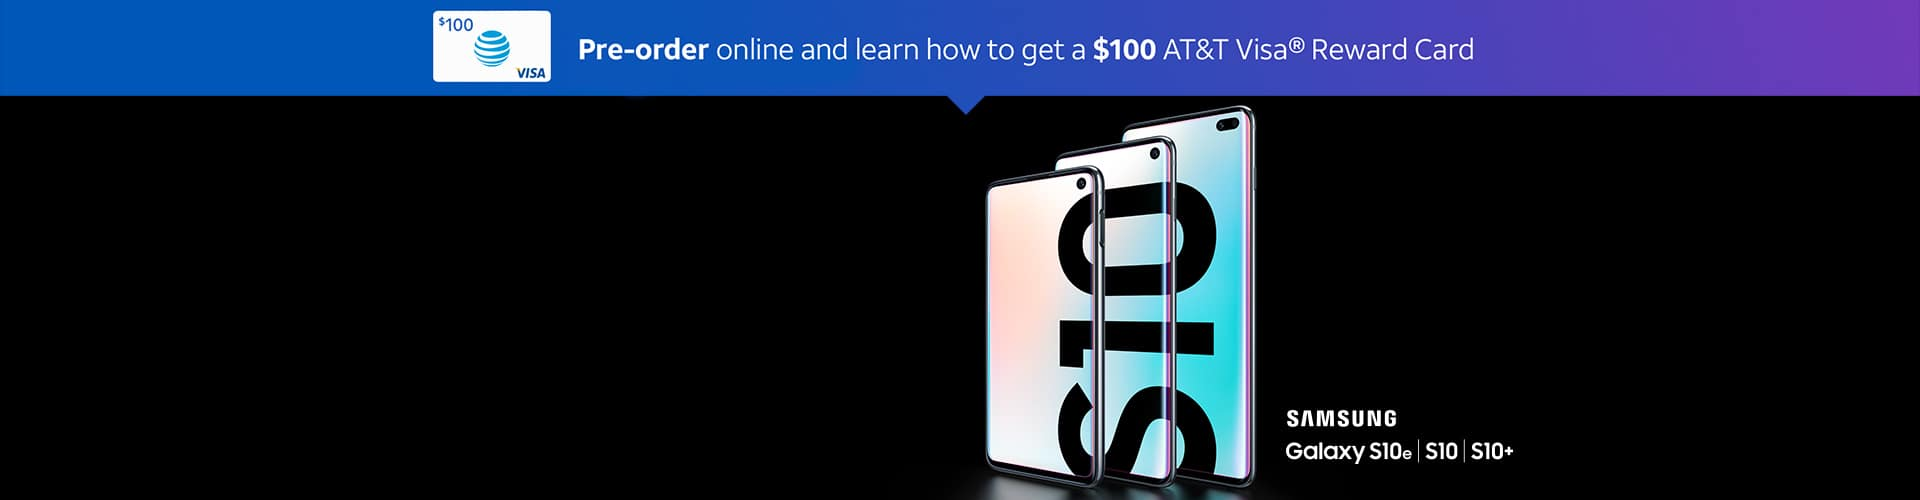 Prepaid Phone Plans & Unlimited Data from AT&T PREPAID